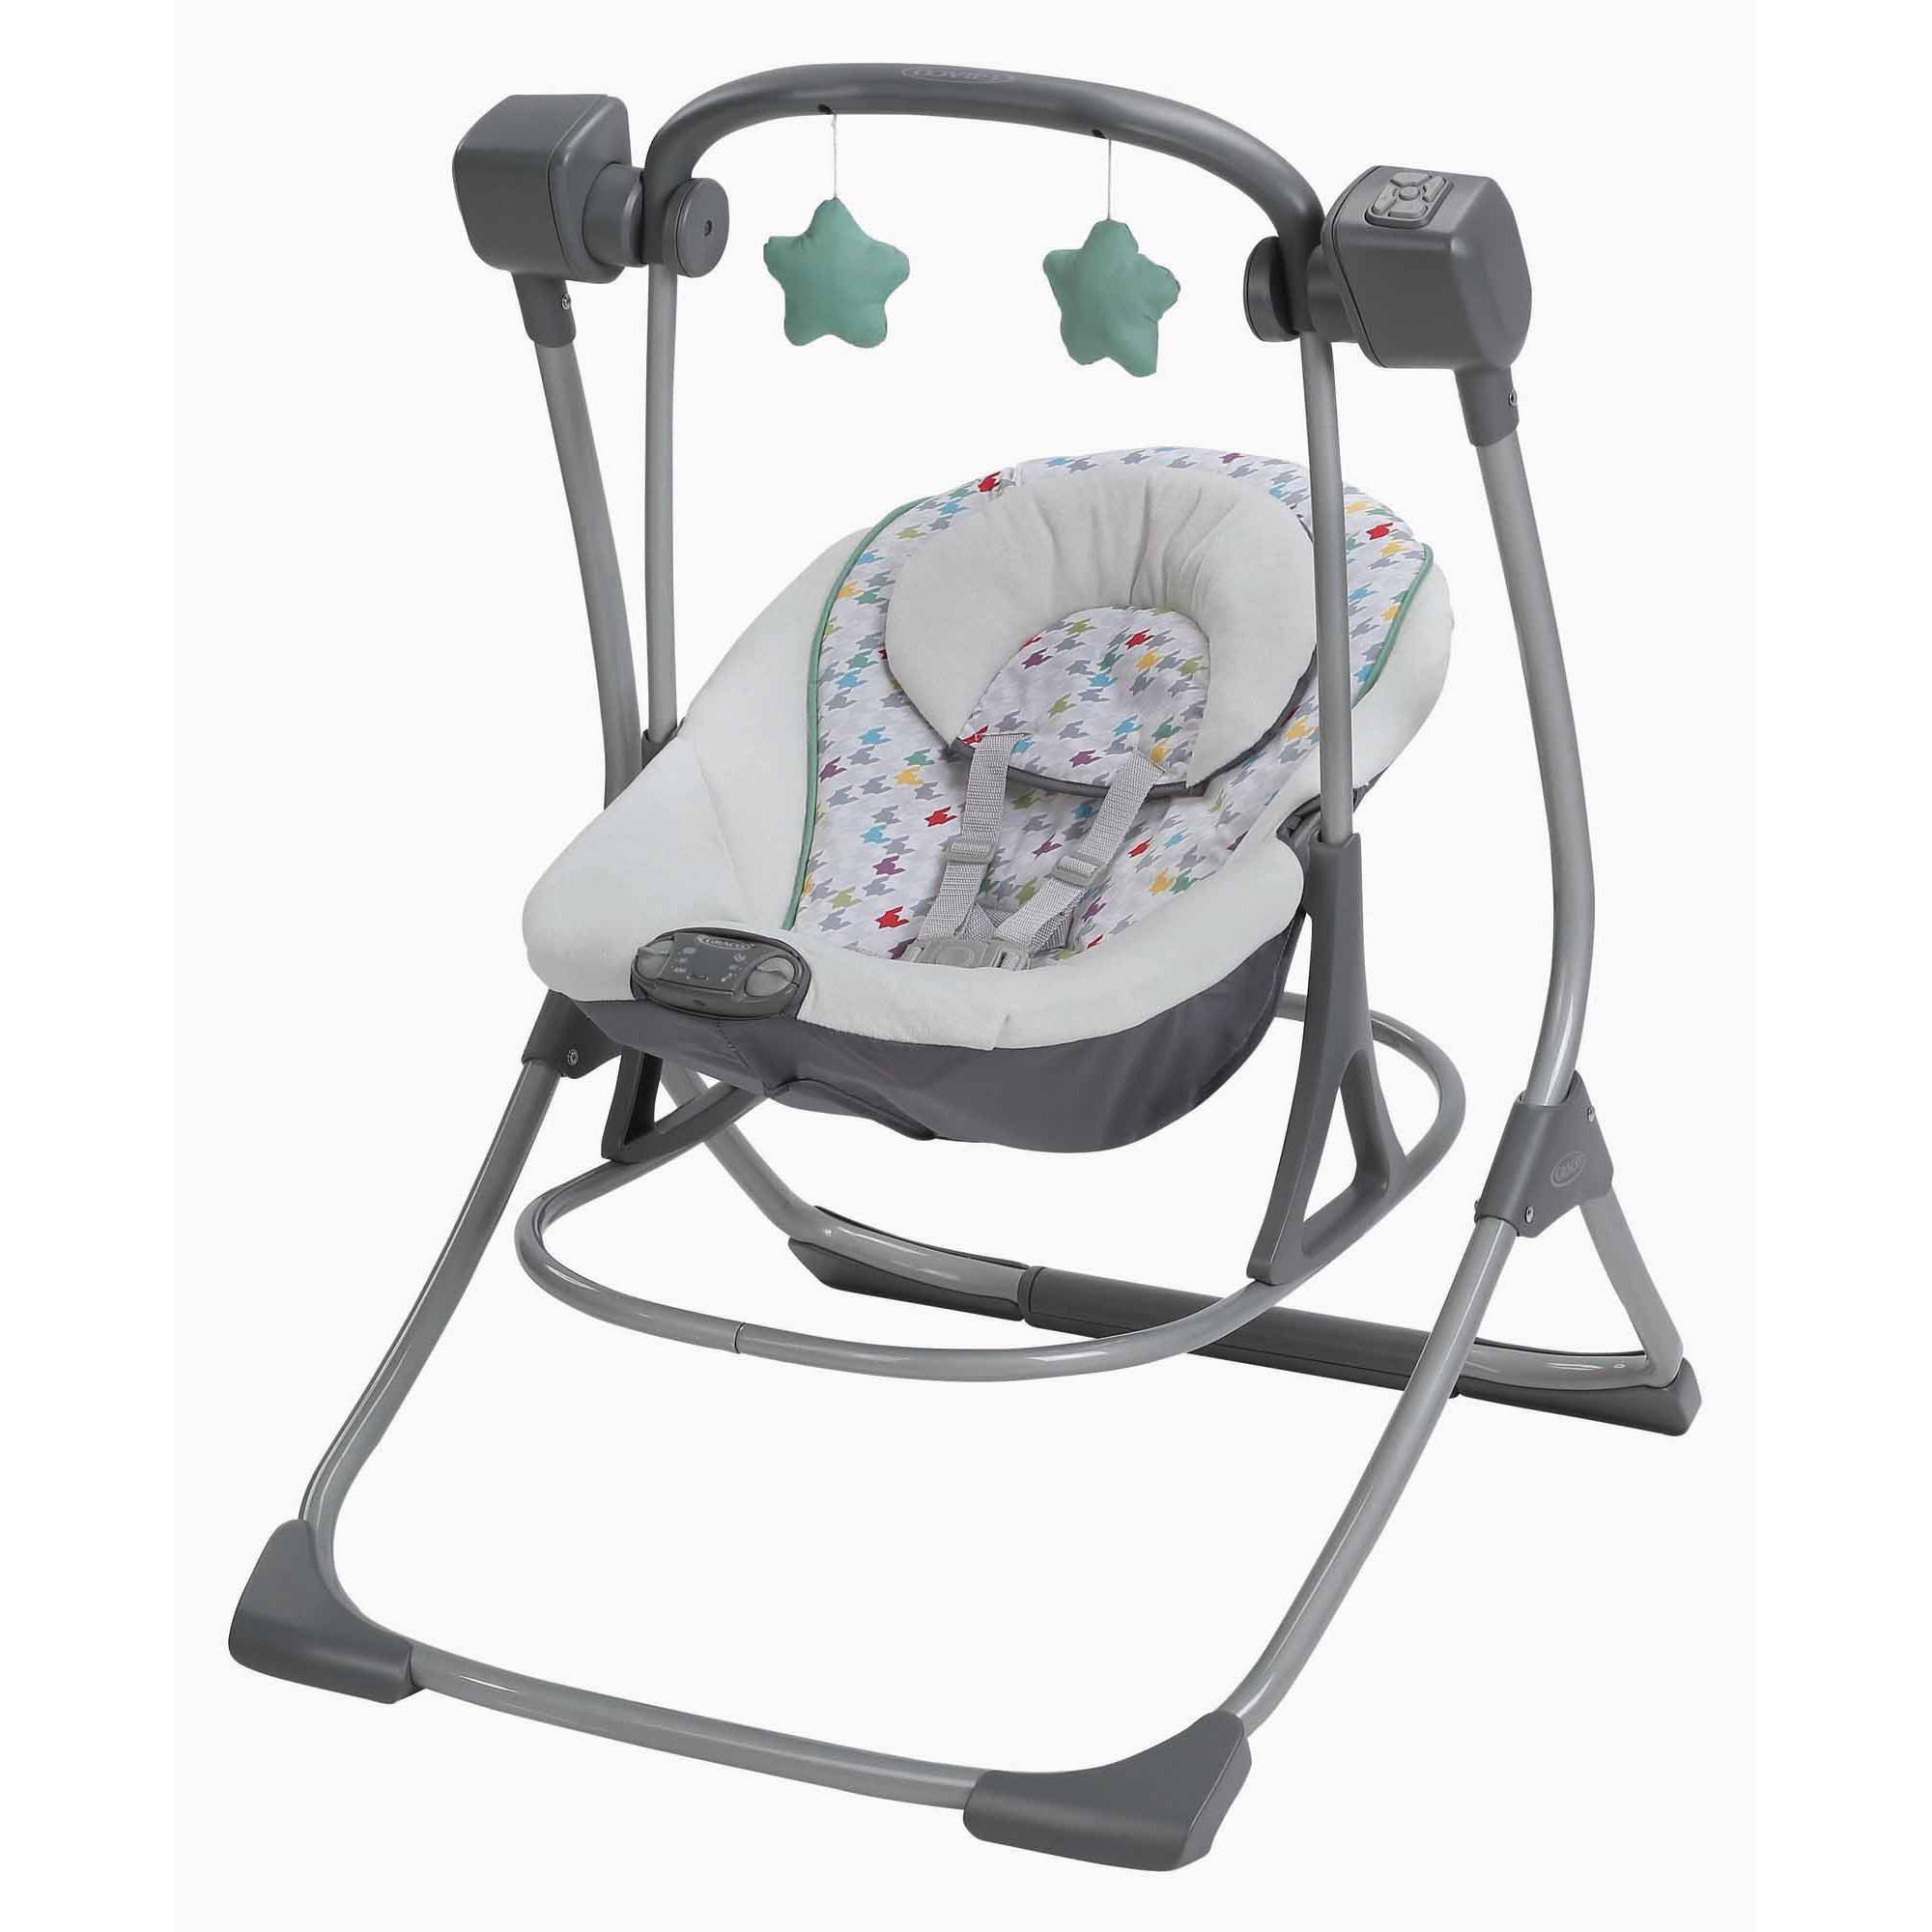 Graco Cozy Duet Baby Swing and Rocker, Lambert